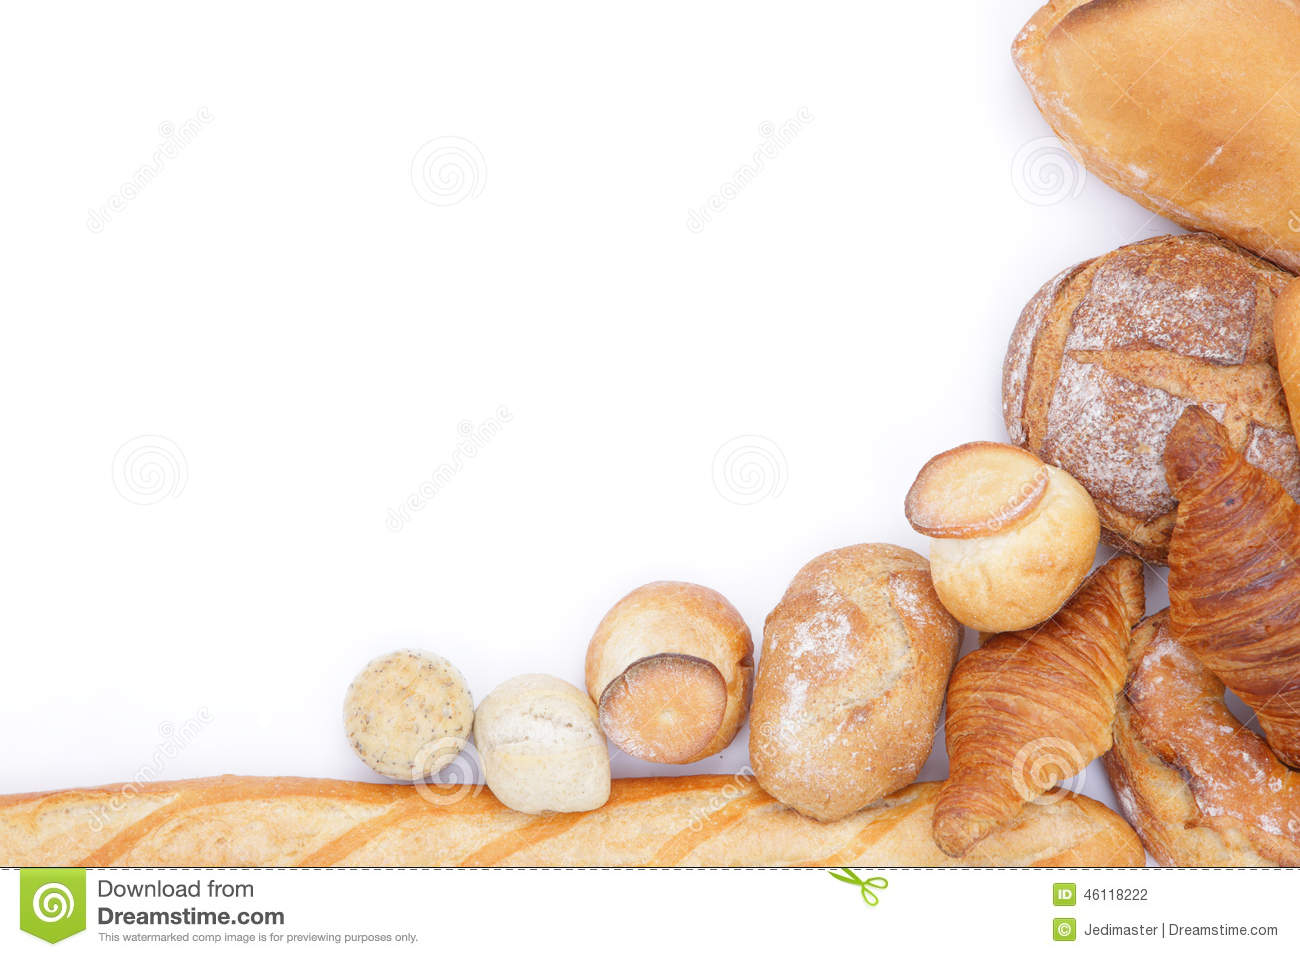 Bread frame stock photo. Image of breads, breakfast, healthy - 46118222